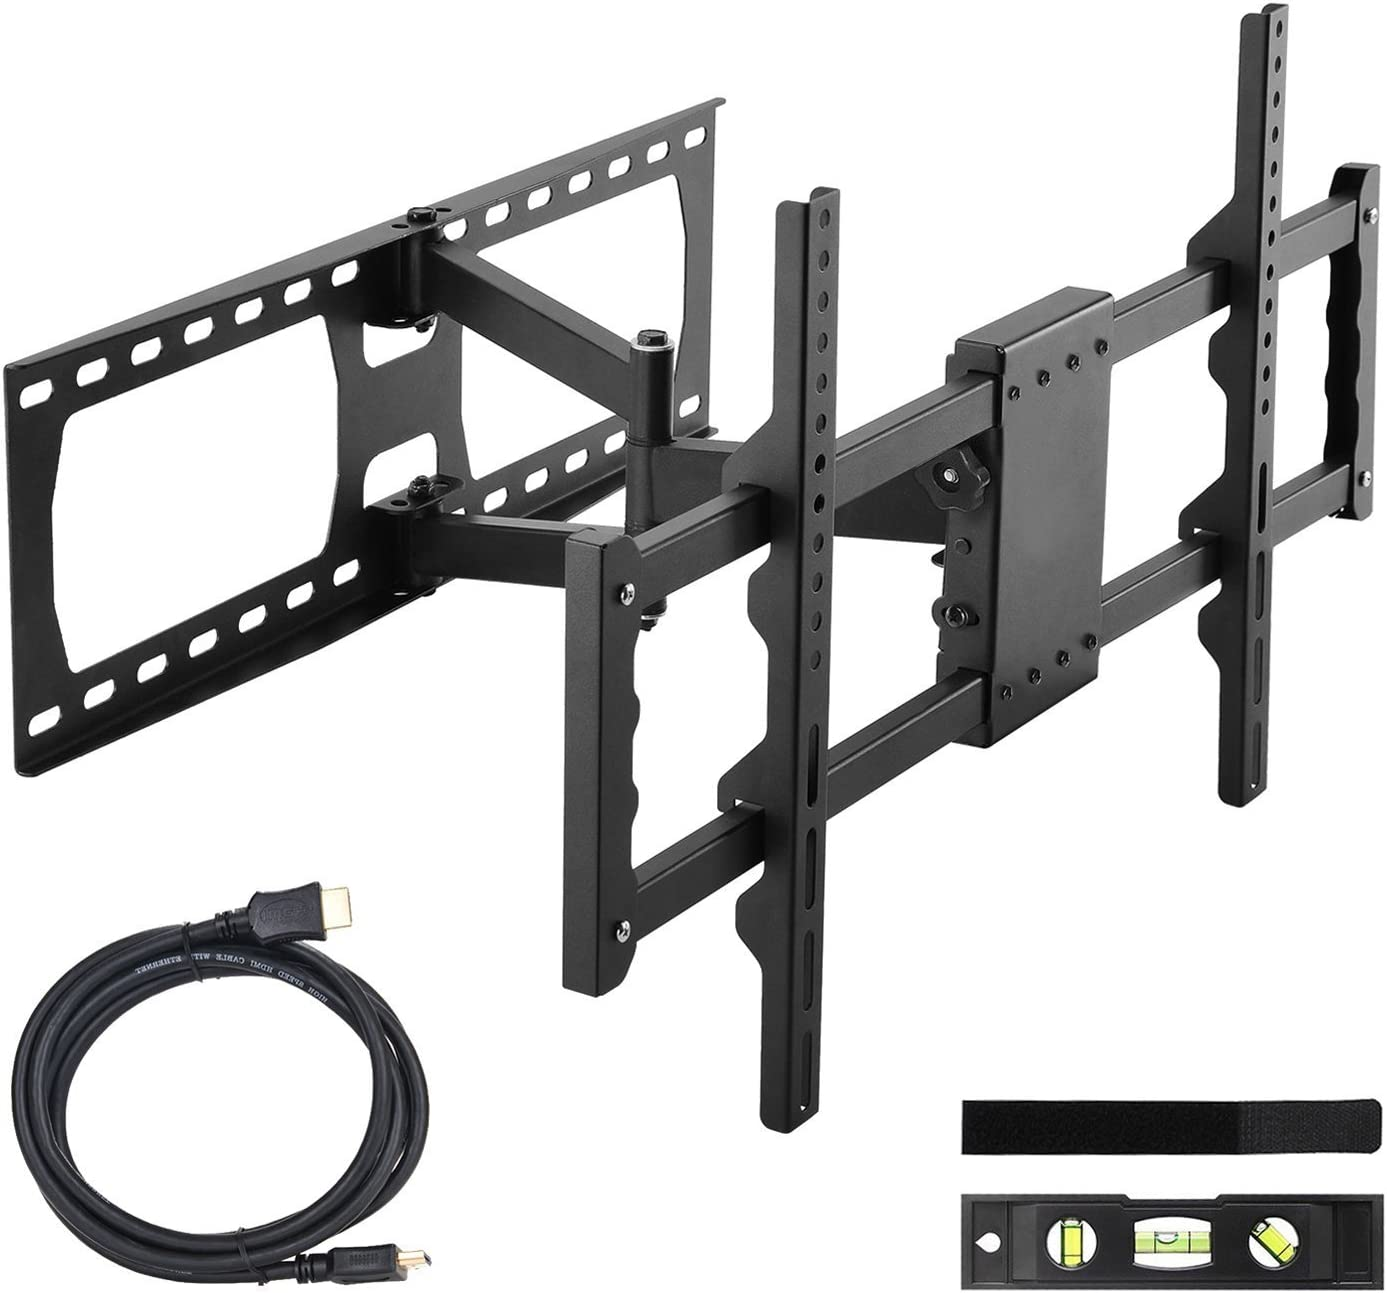 ORIENTOOLS Tilting TV Wall Mount Bracket for Most of 23-56 Inches TVs with VESA 400x400mm and Loading Capacity 66 lbs -15/° Tilt